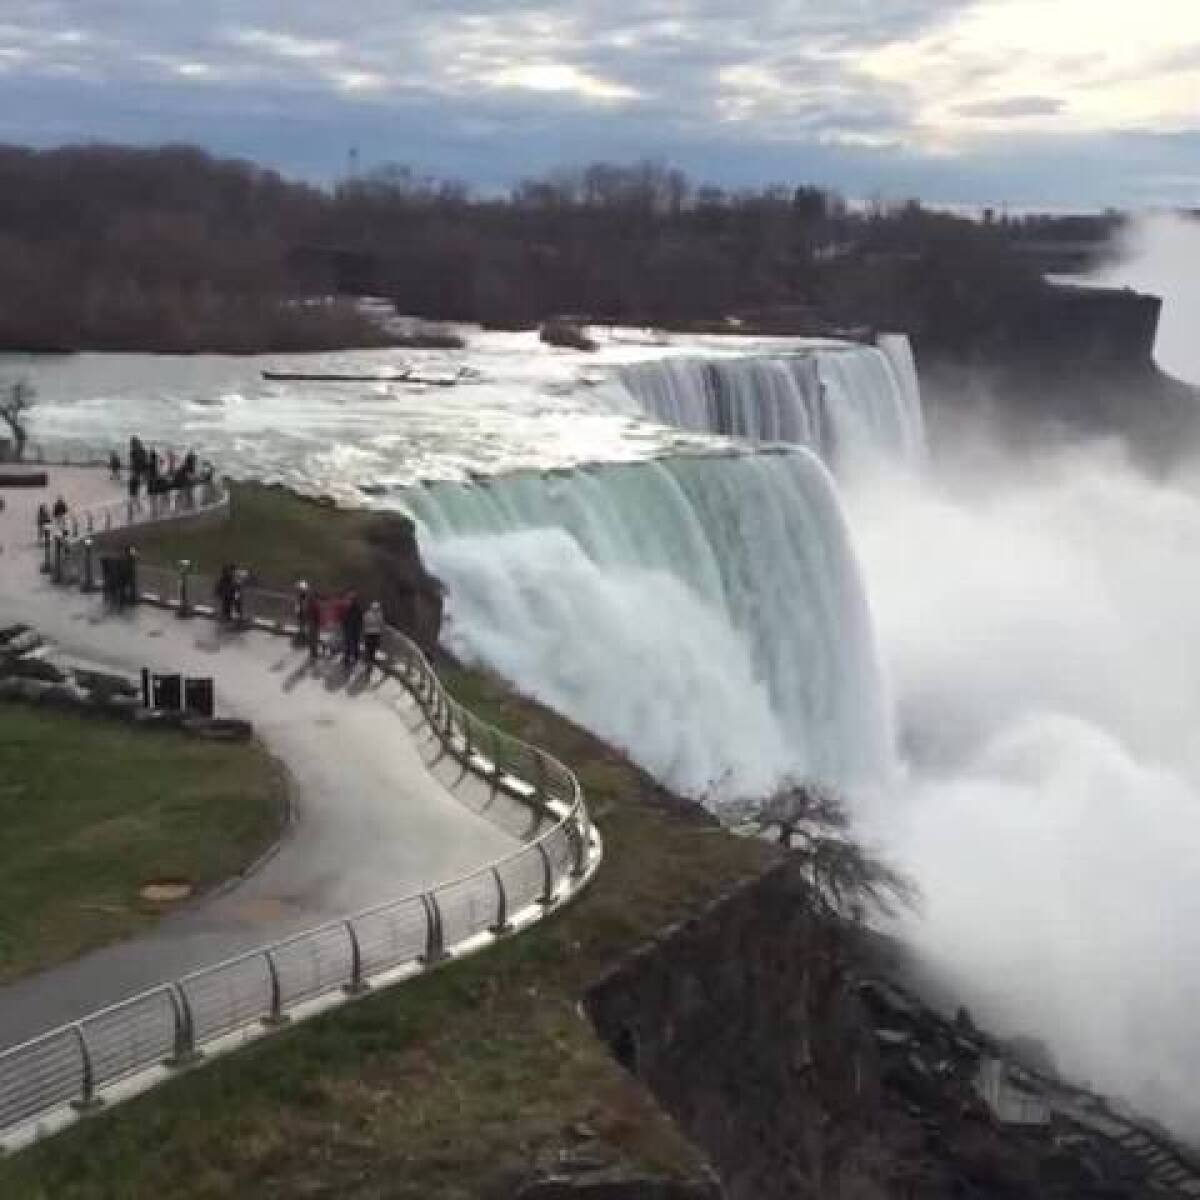 Search underway for man who went over Niagara Falls